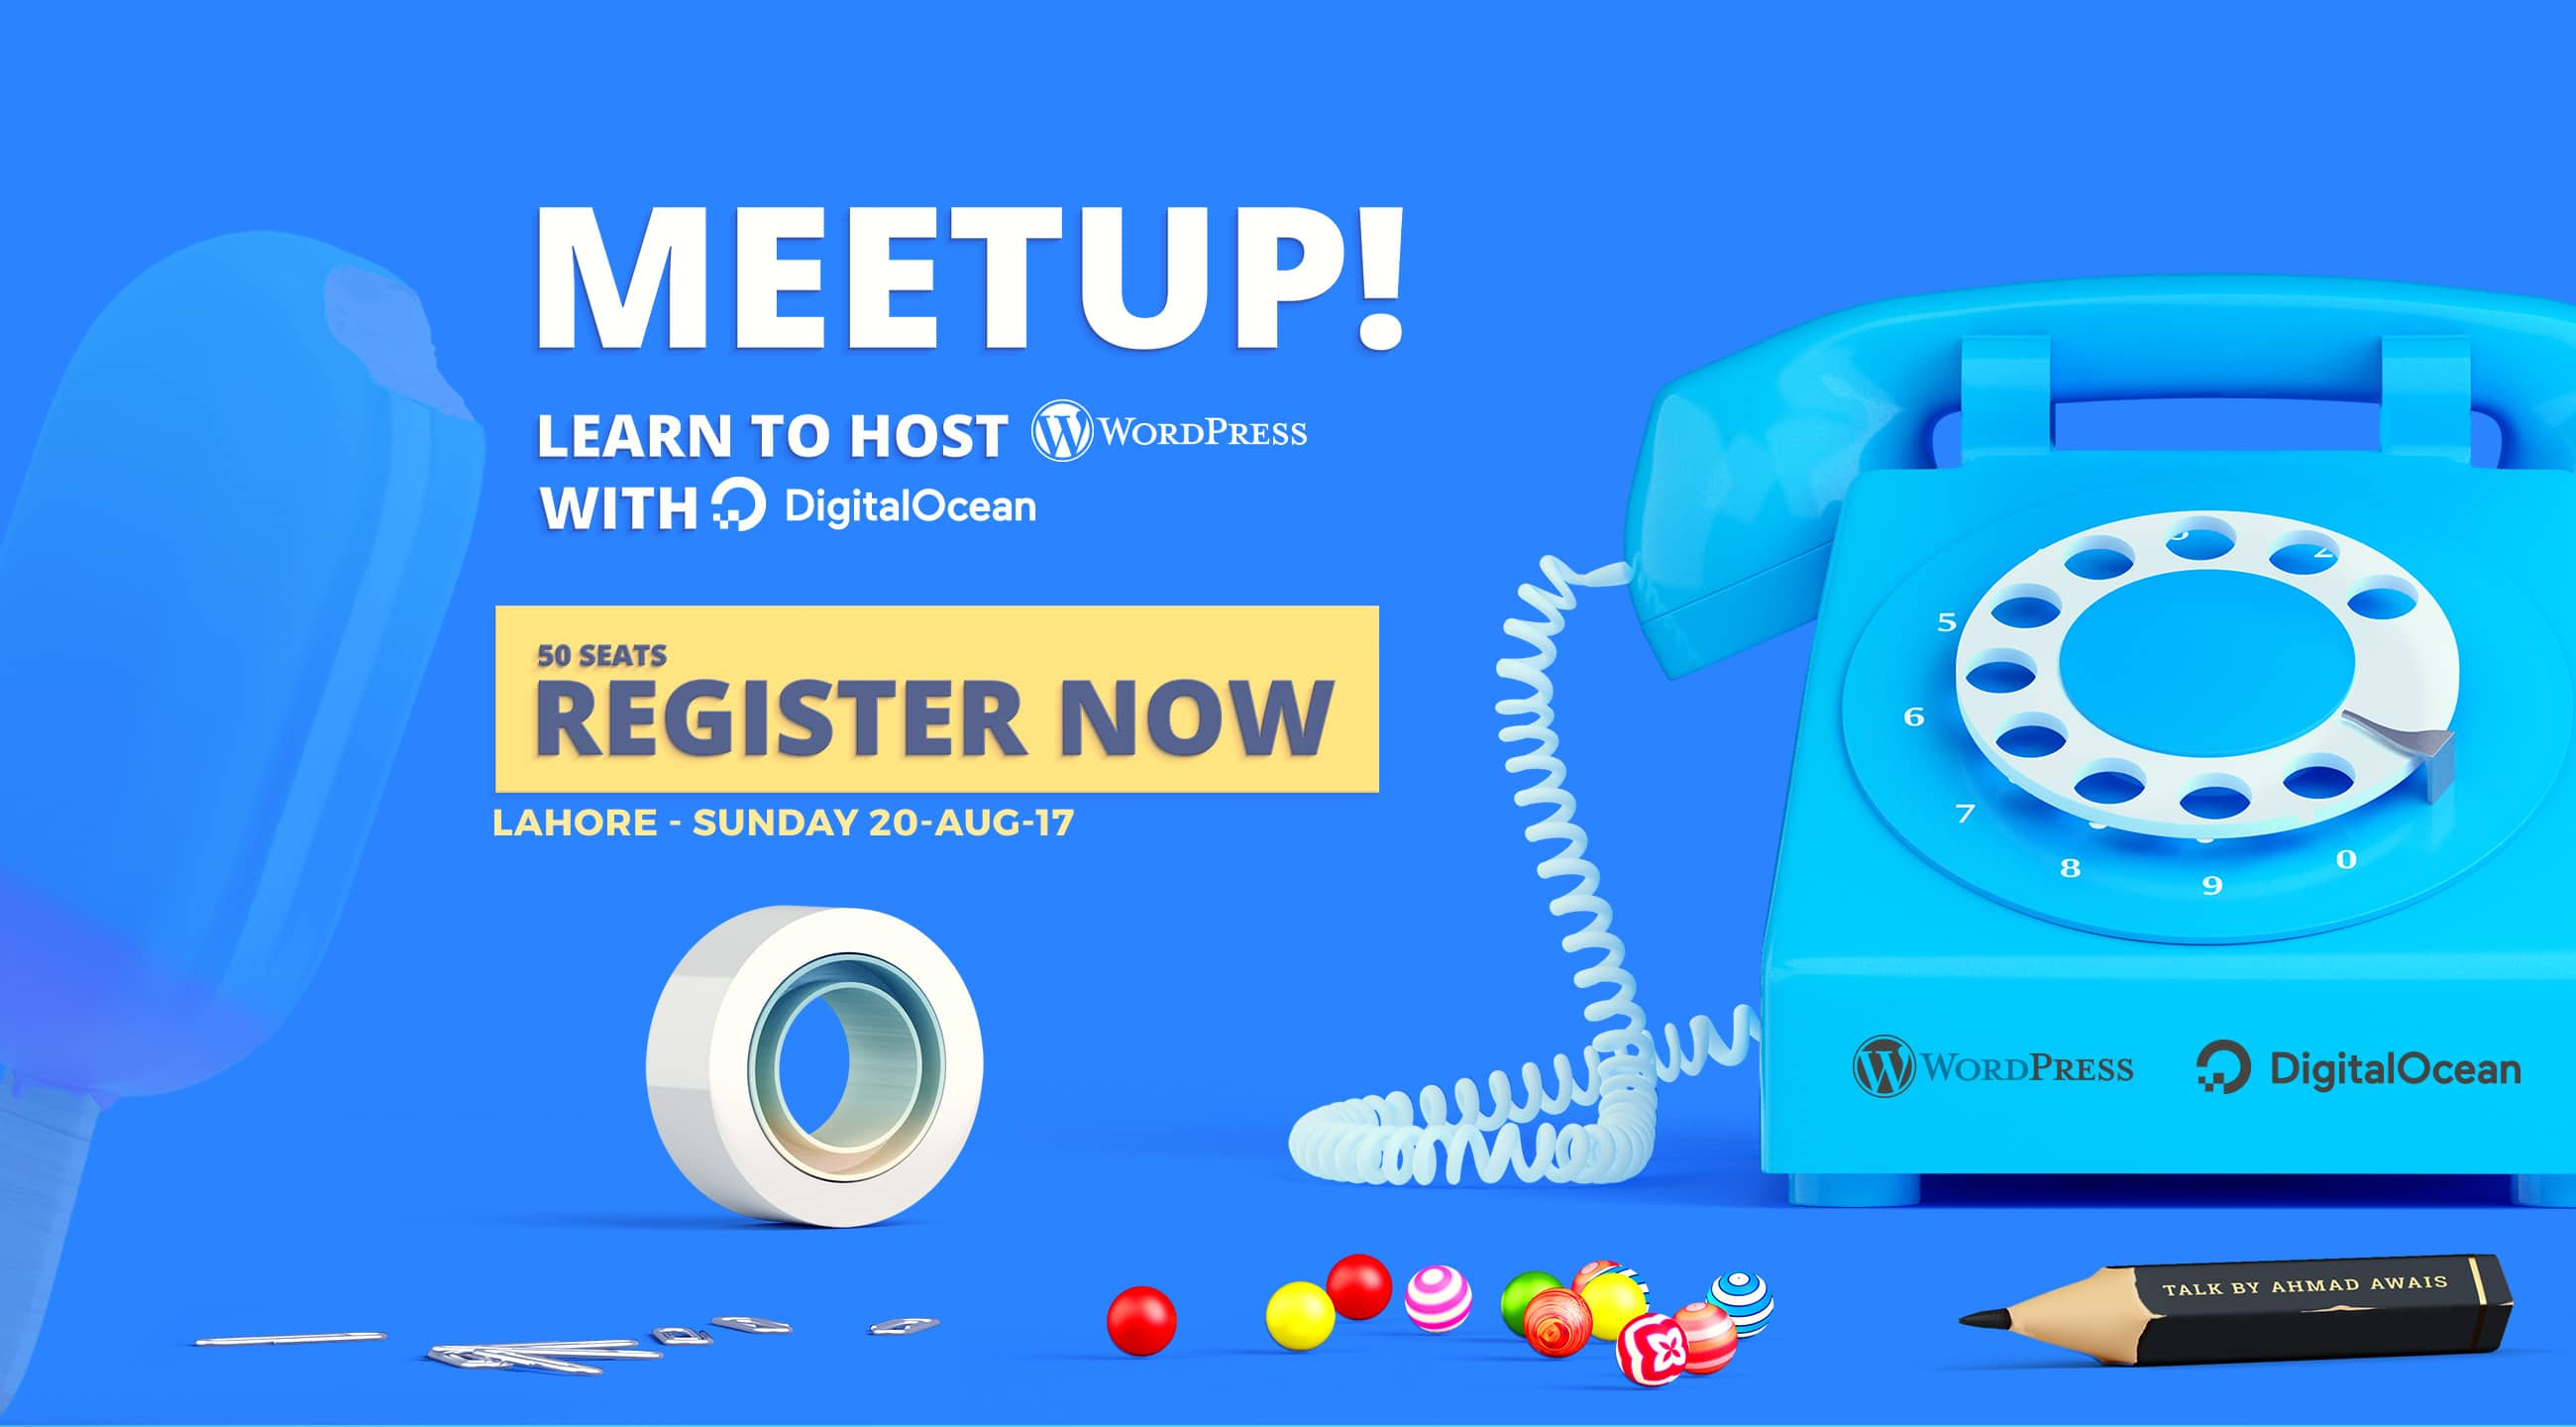 DigitalOcean + WordPress Meetup